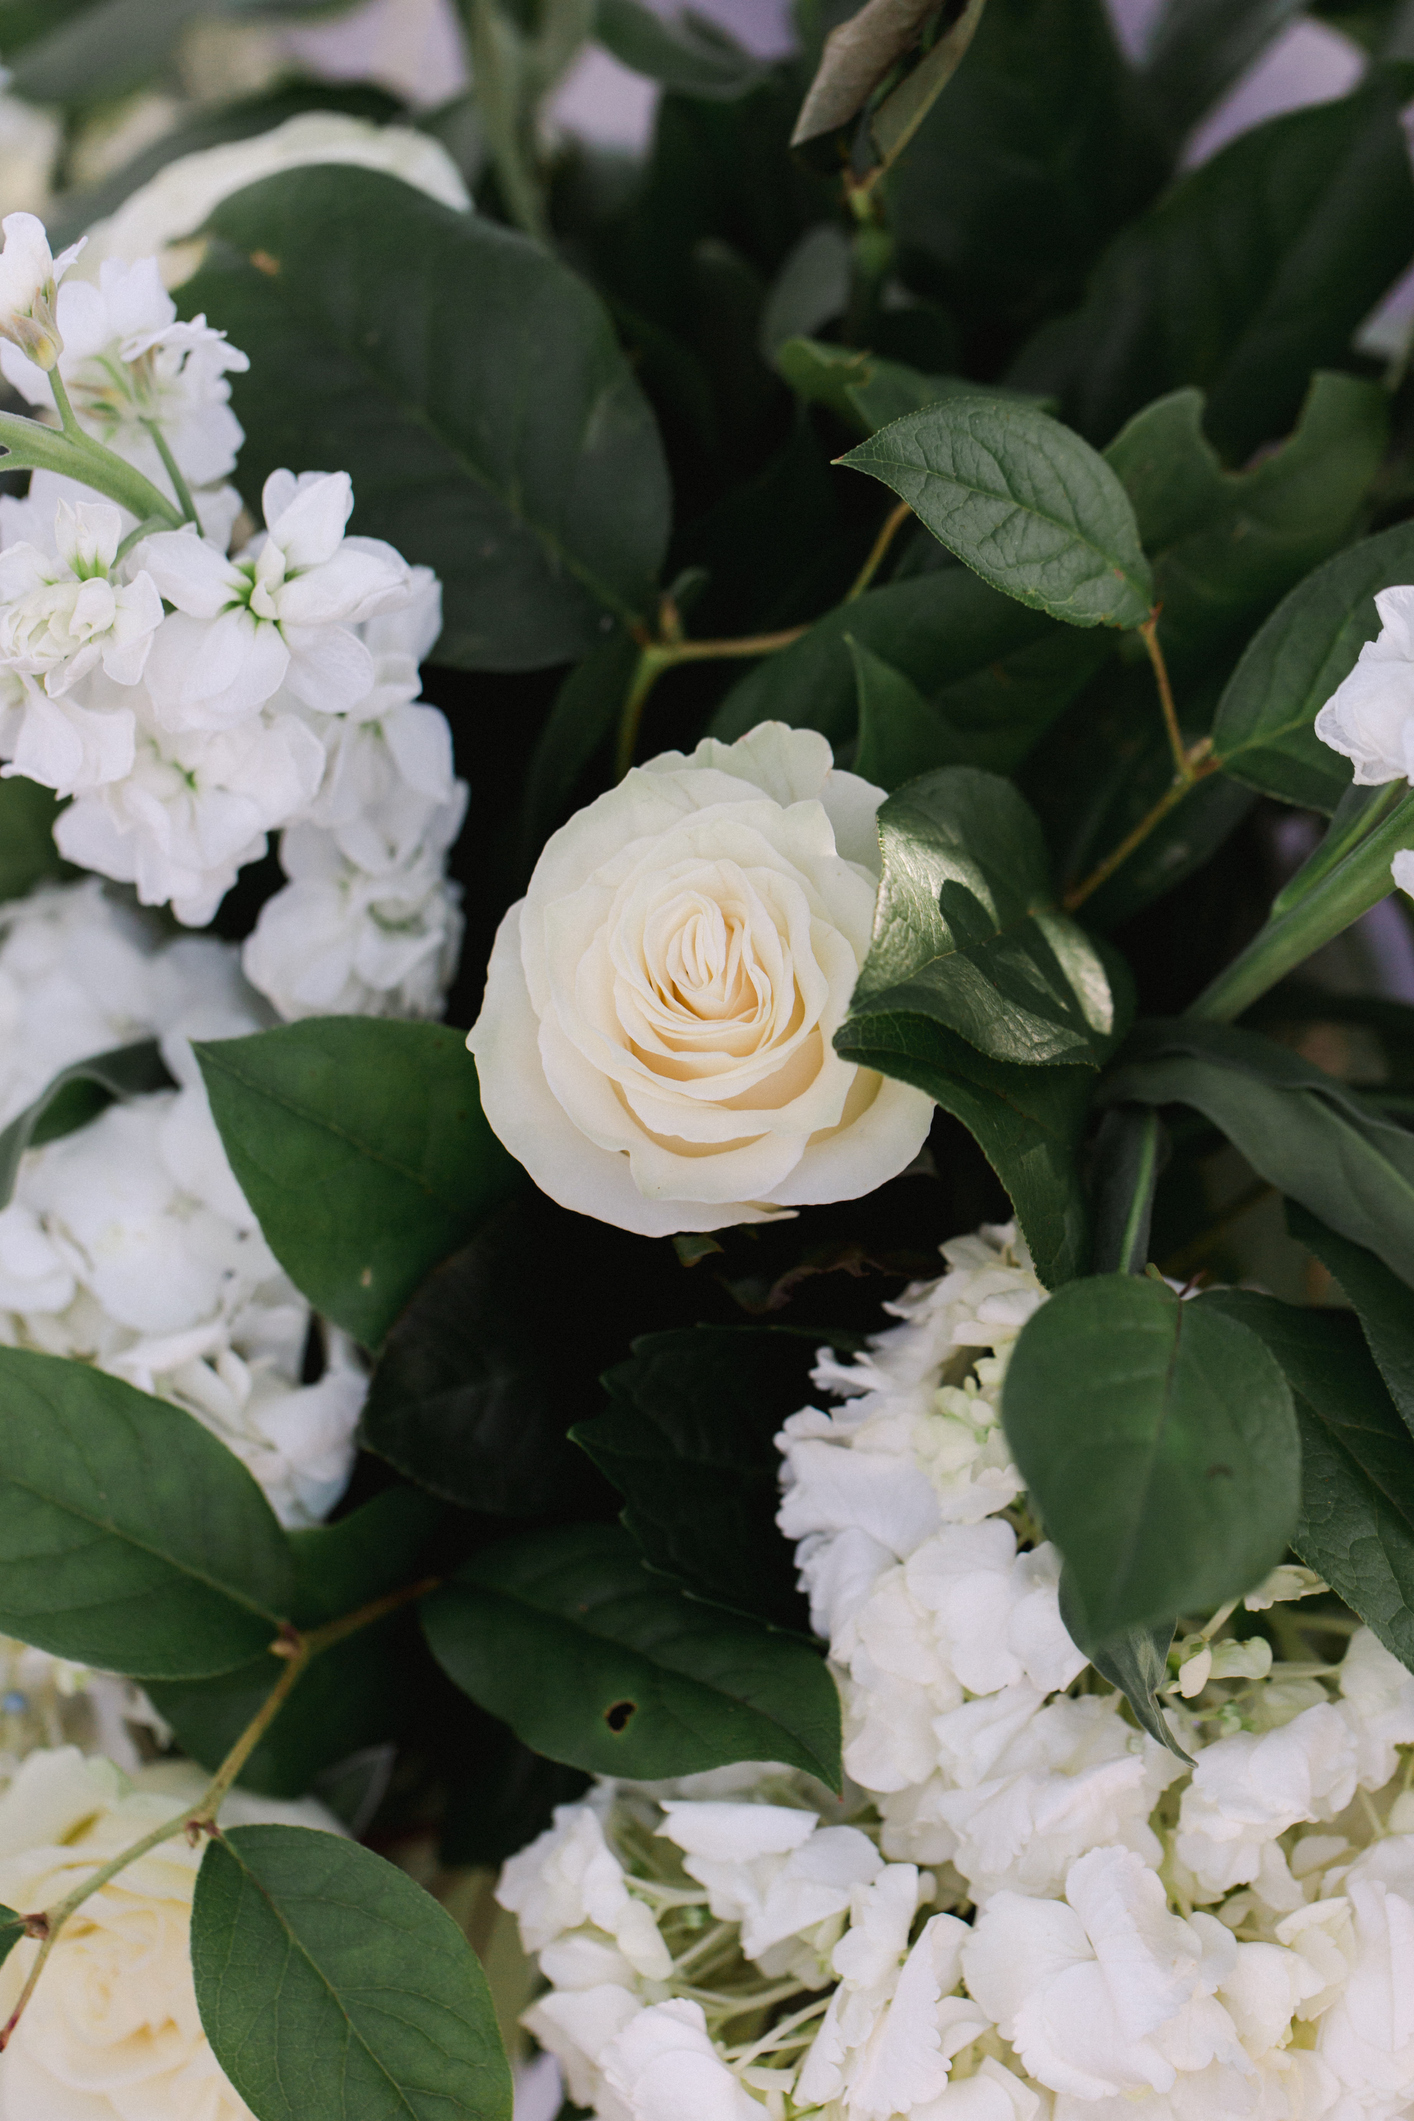 Garden Wedding Details of White Roses and green leaves close up